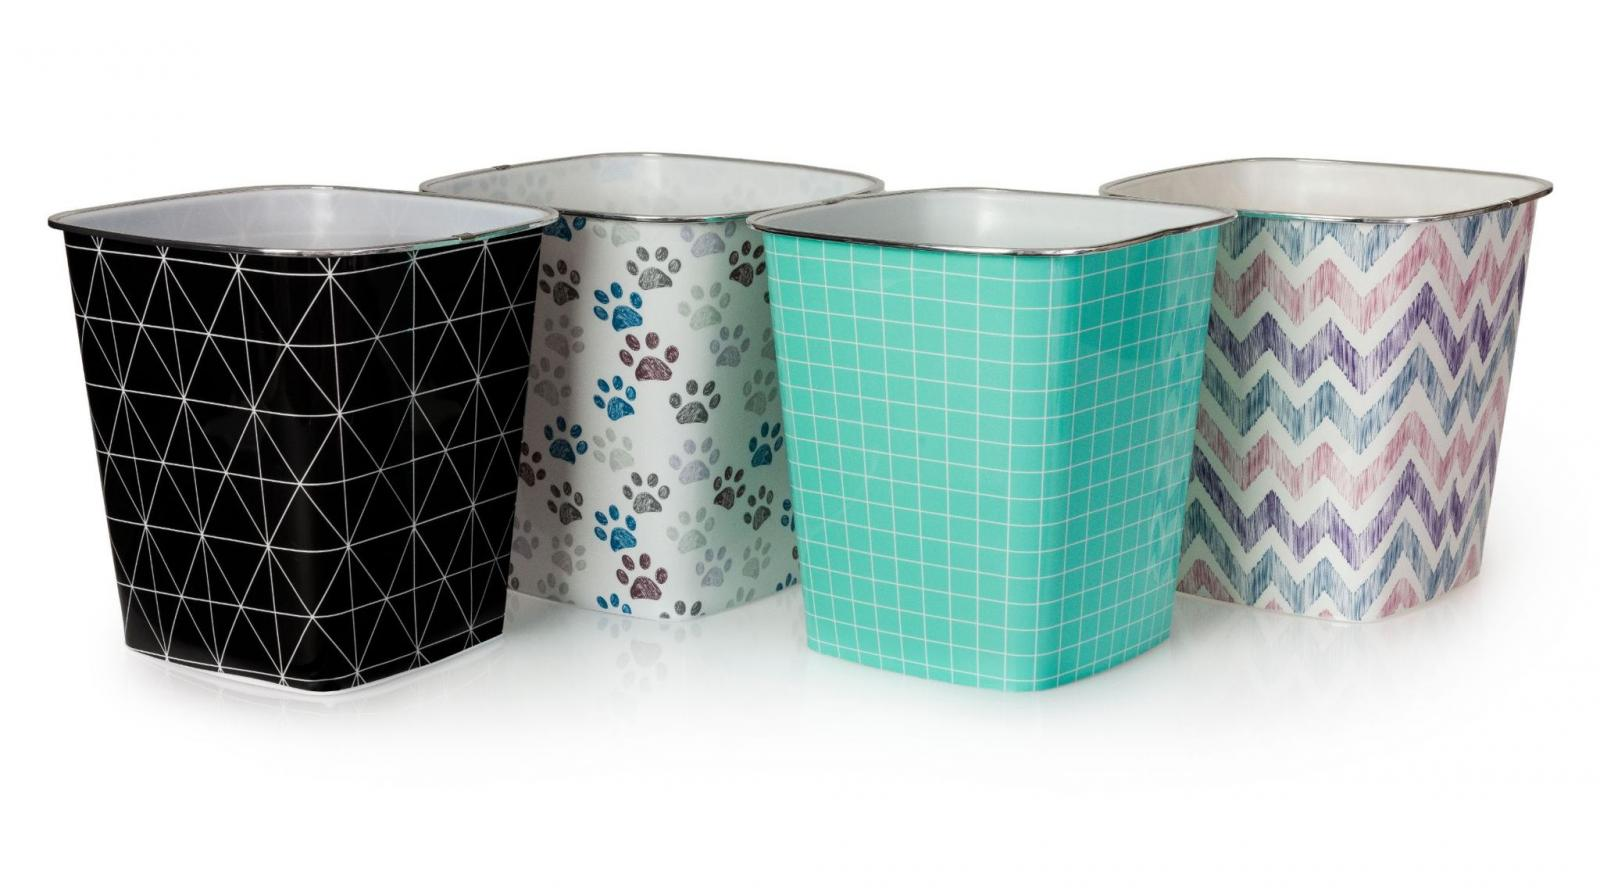 Plastic Square Bin - Assorted Patterns – Now Only £2.50